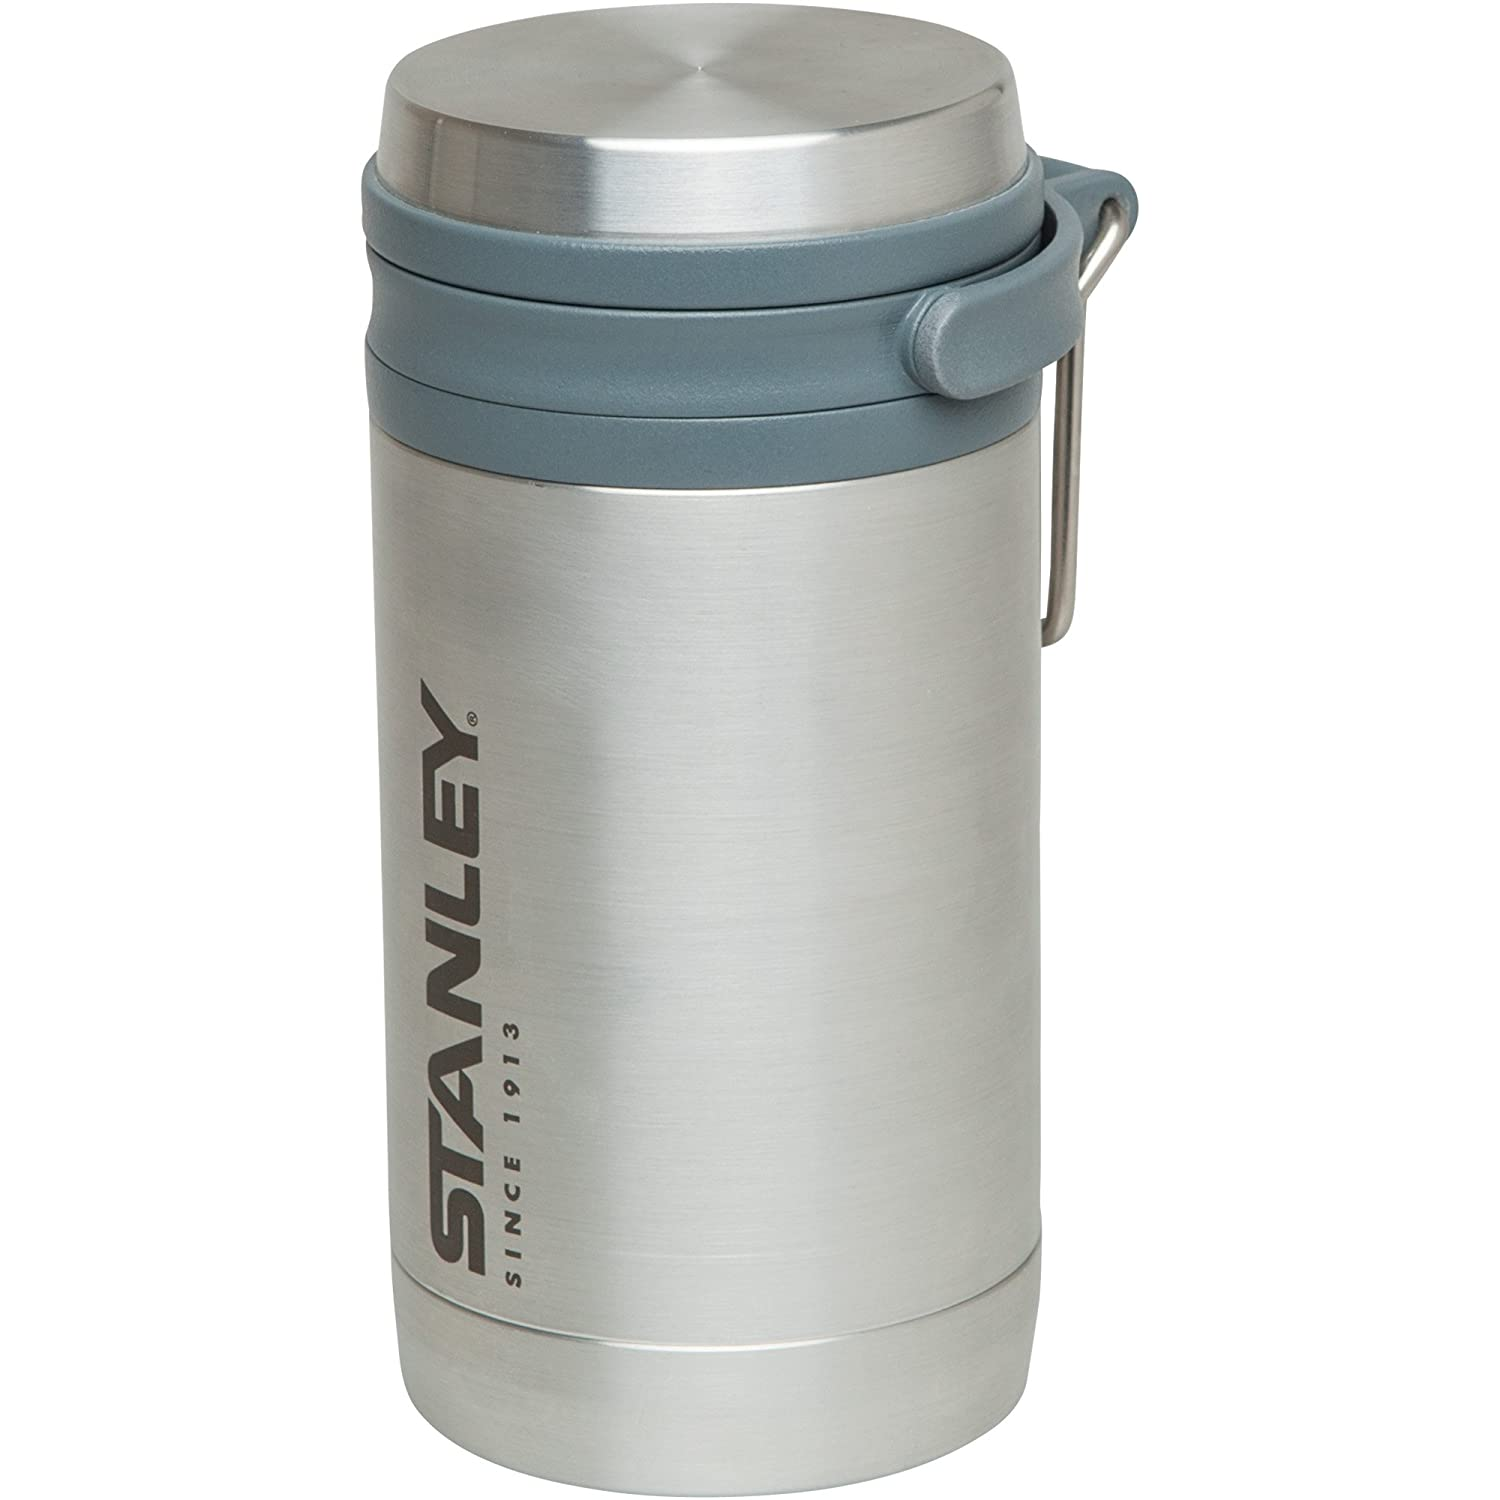 STANLEY Mountain Vacuum Insulated Trail Mug, Stainless Steel, 0.35 Litre Pacific Market International 10-01939-002